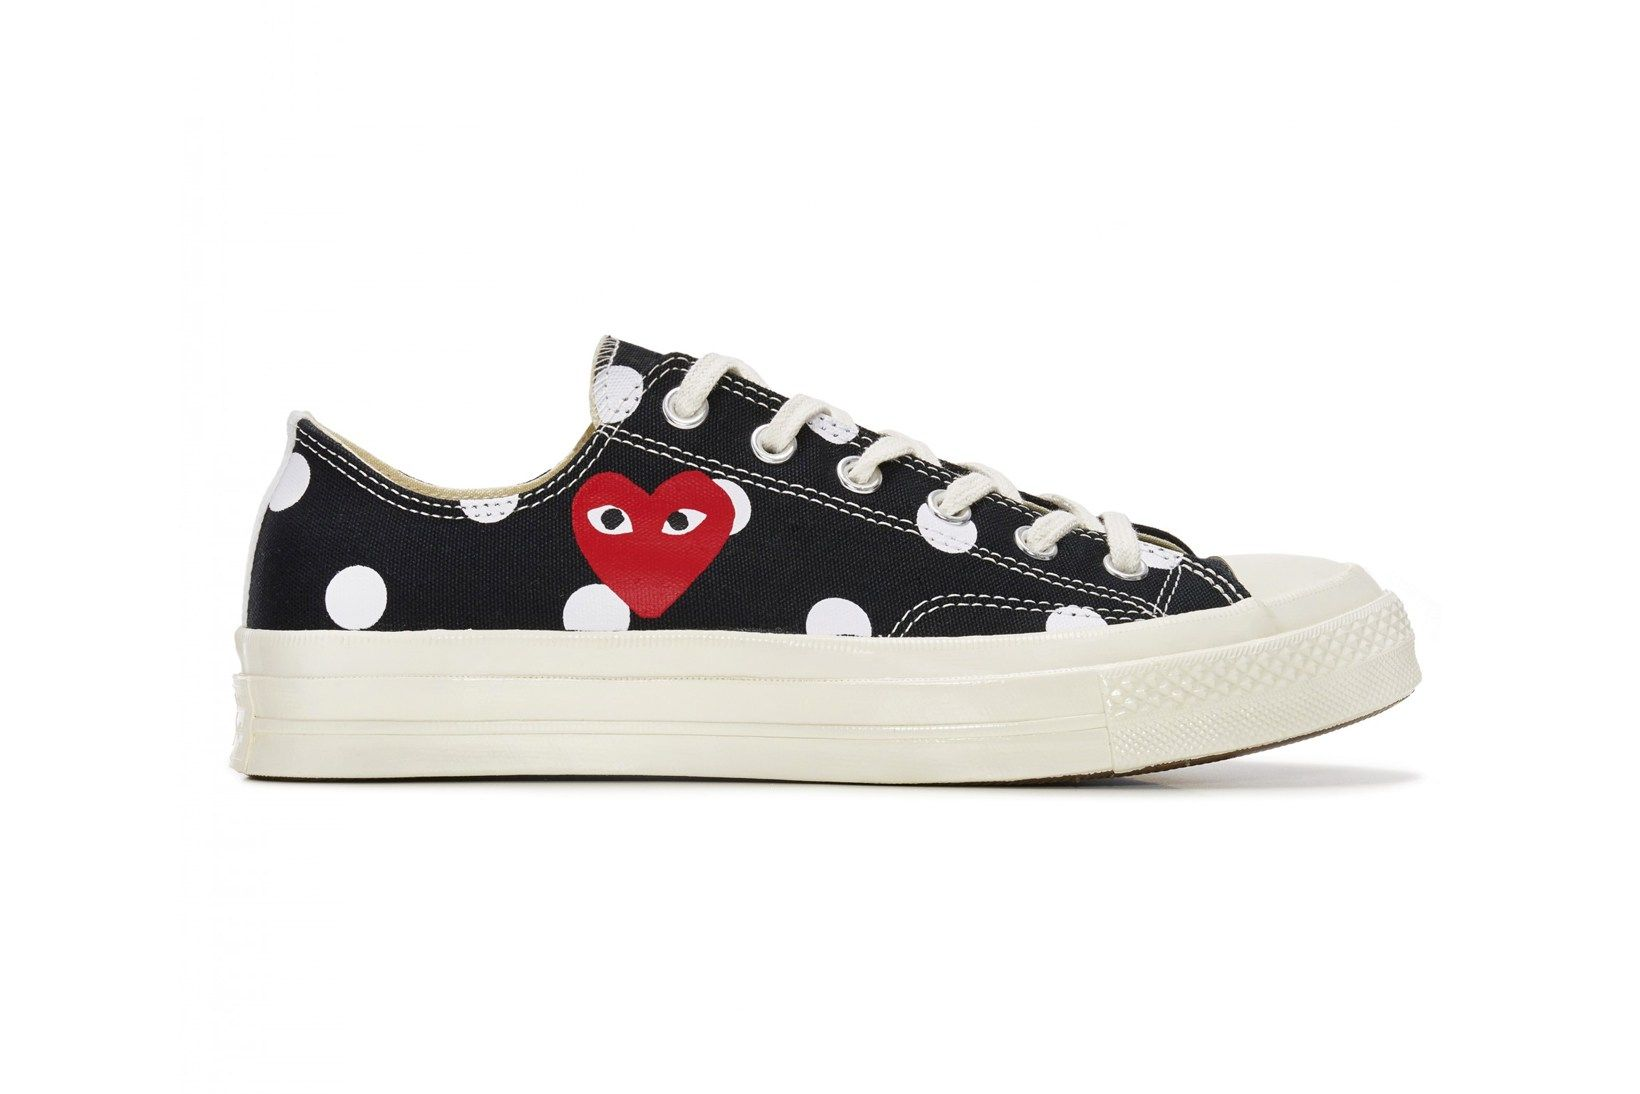 f00bfc514d19 COMME des GARÇONS PLAY Updates the Converse Chuck Taylor All Star ...